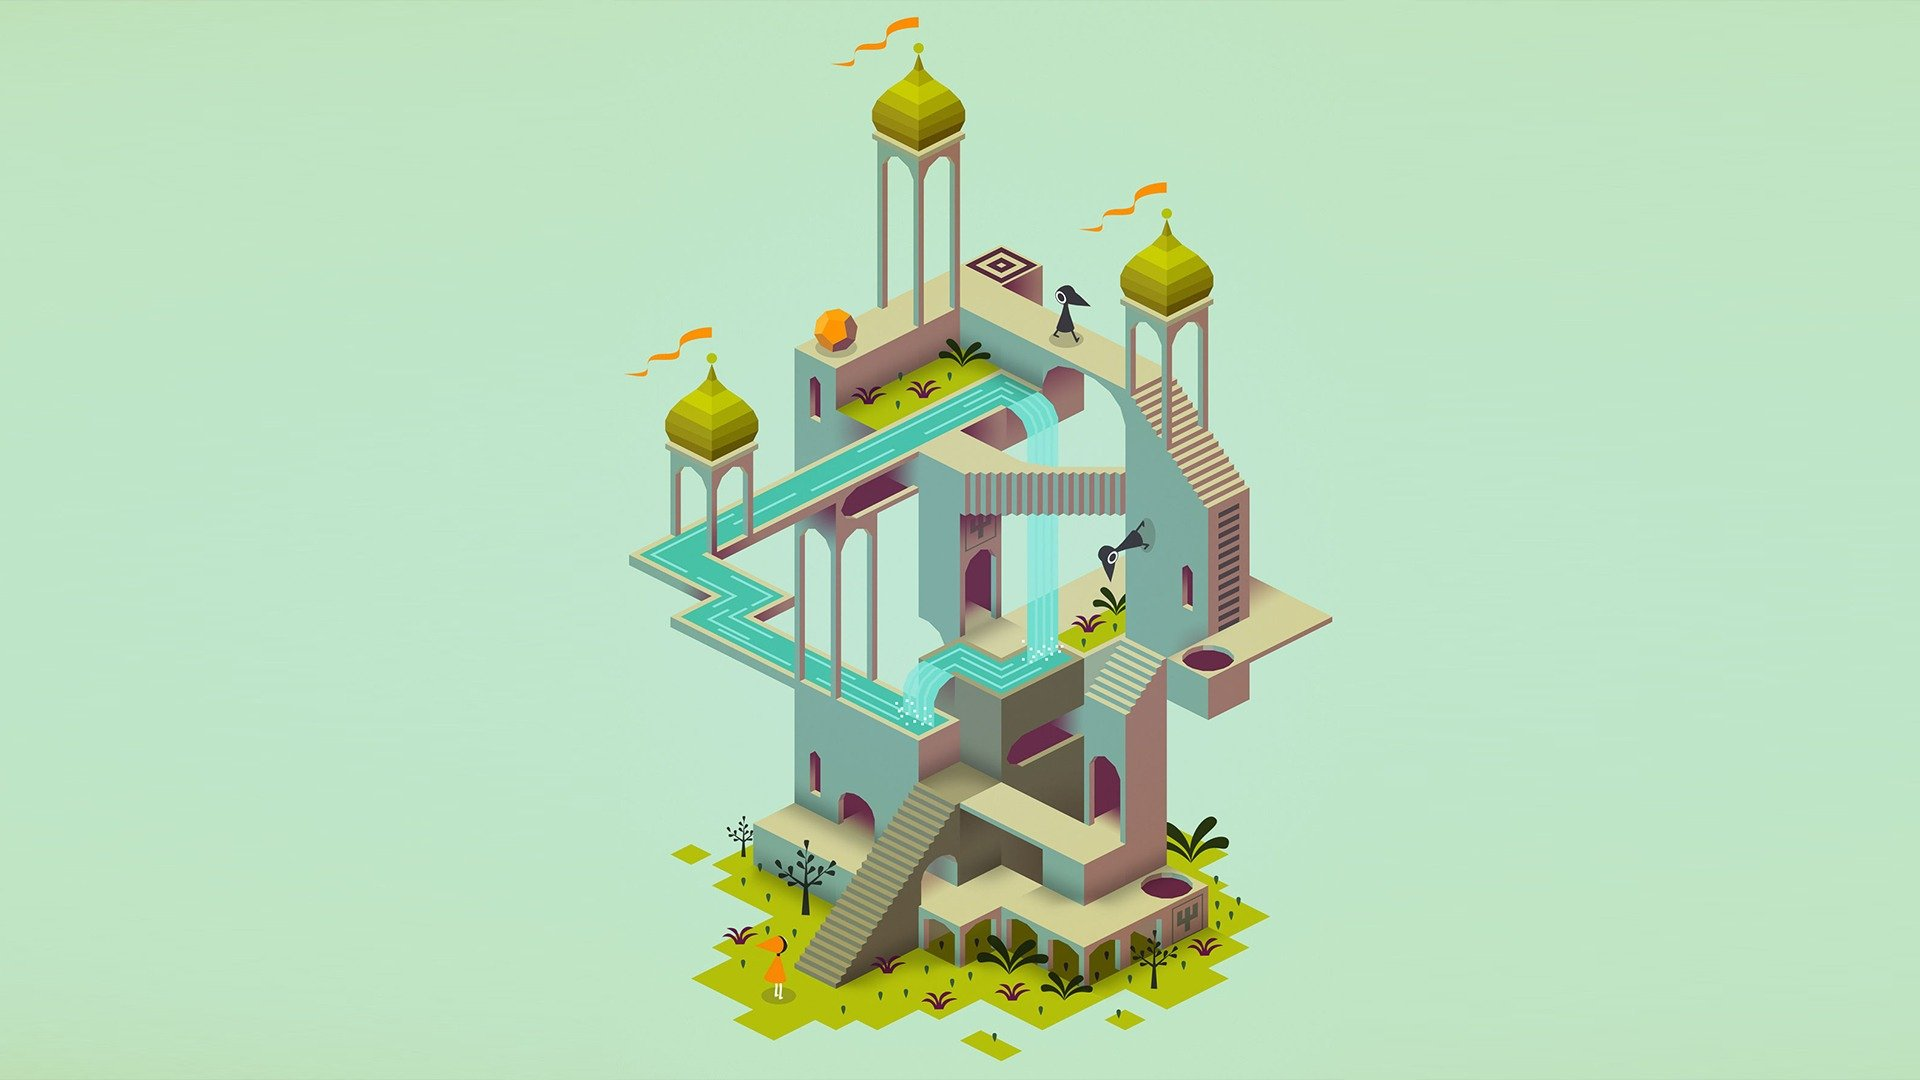 Nivel de Monument Valley